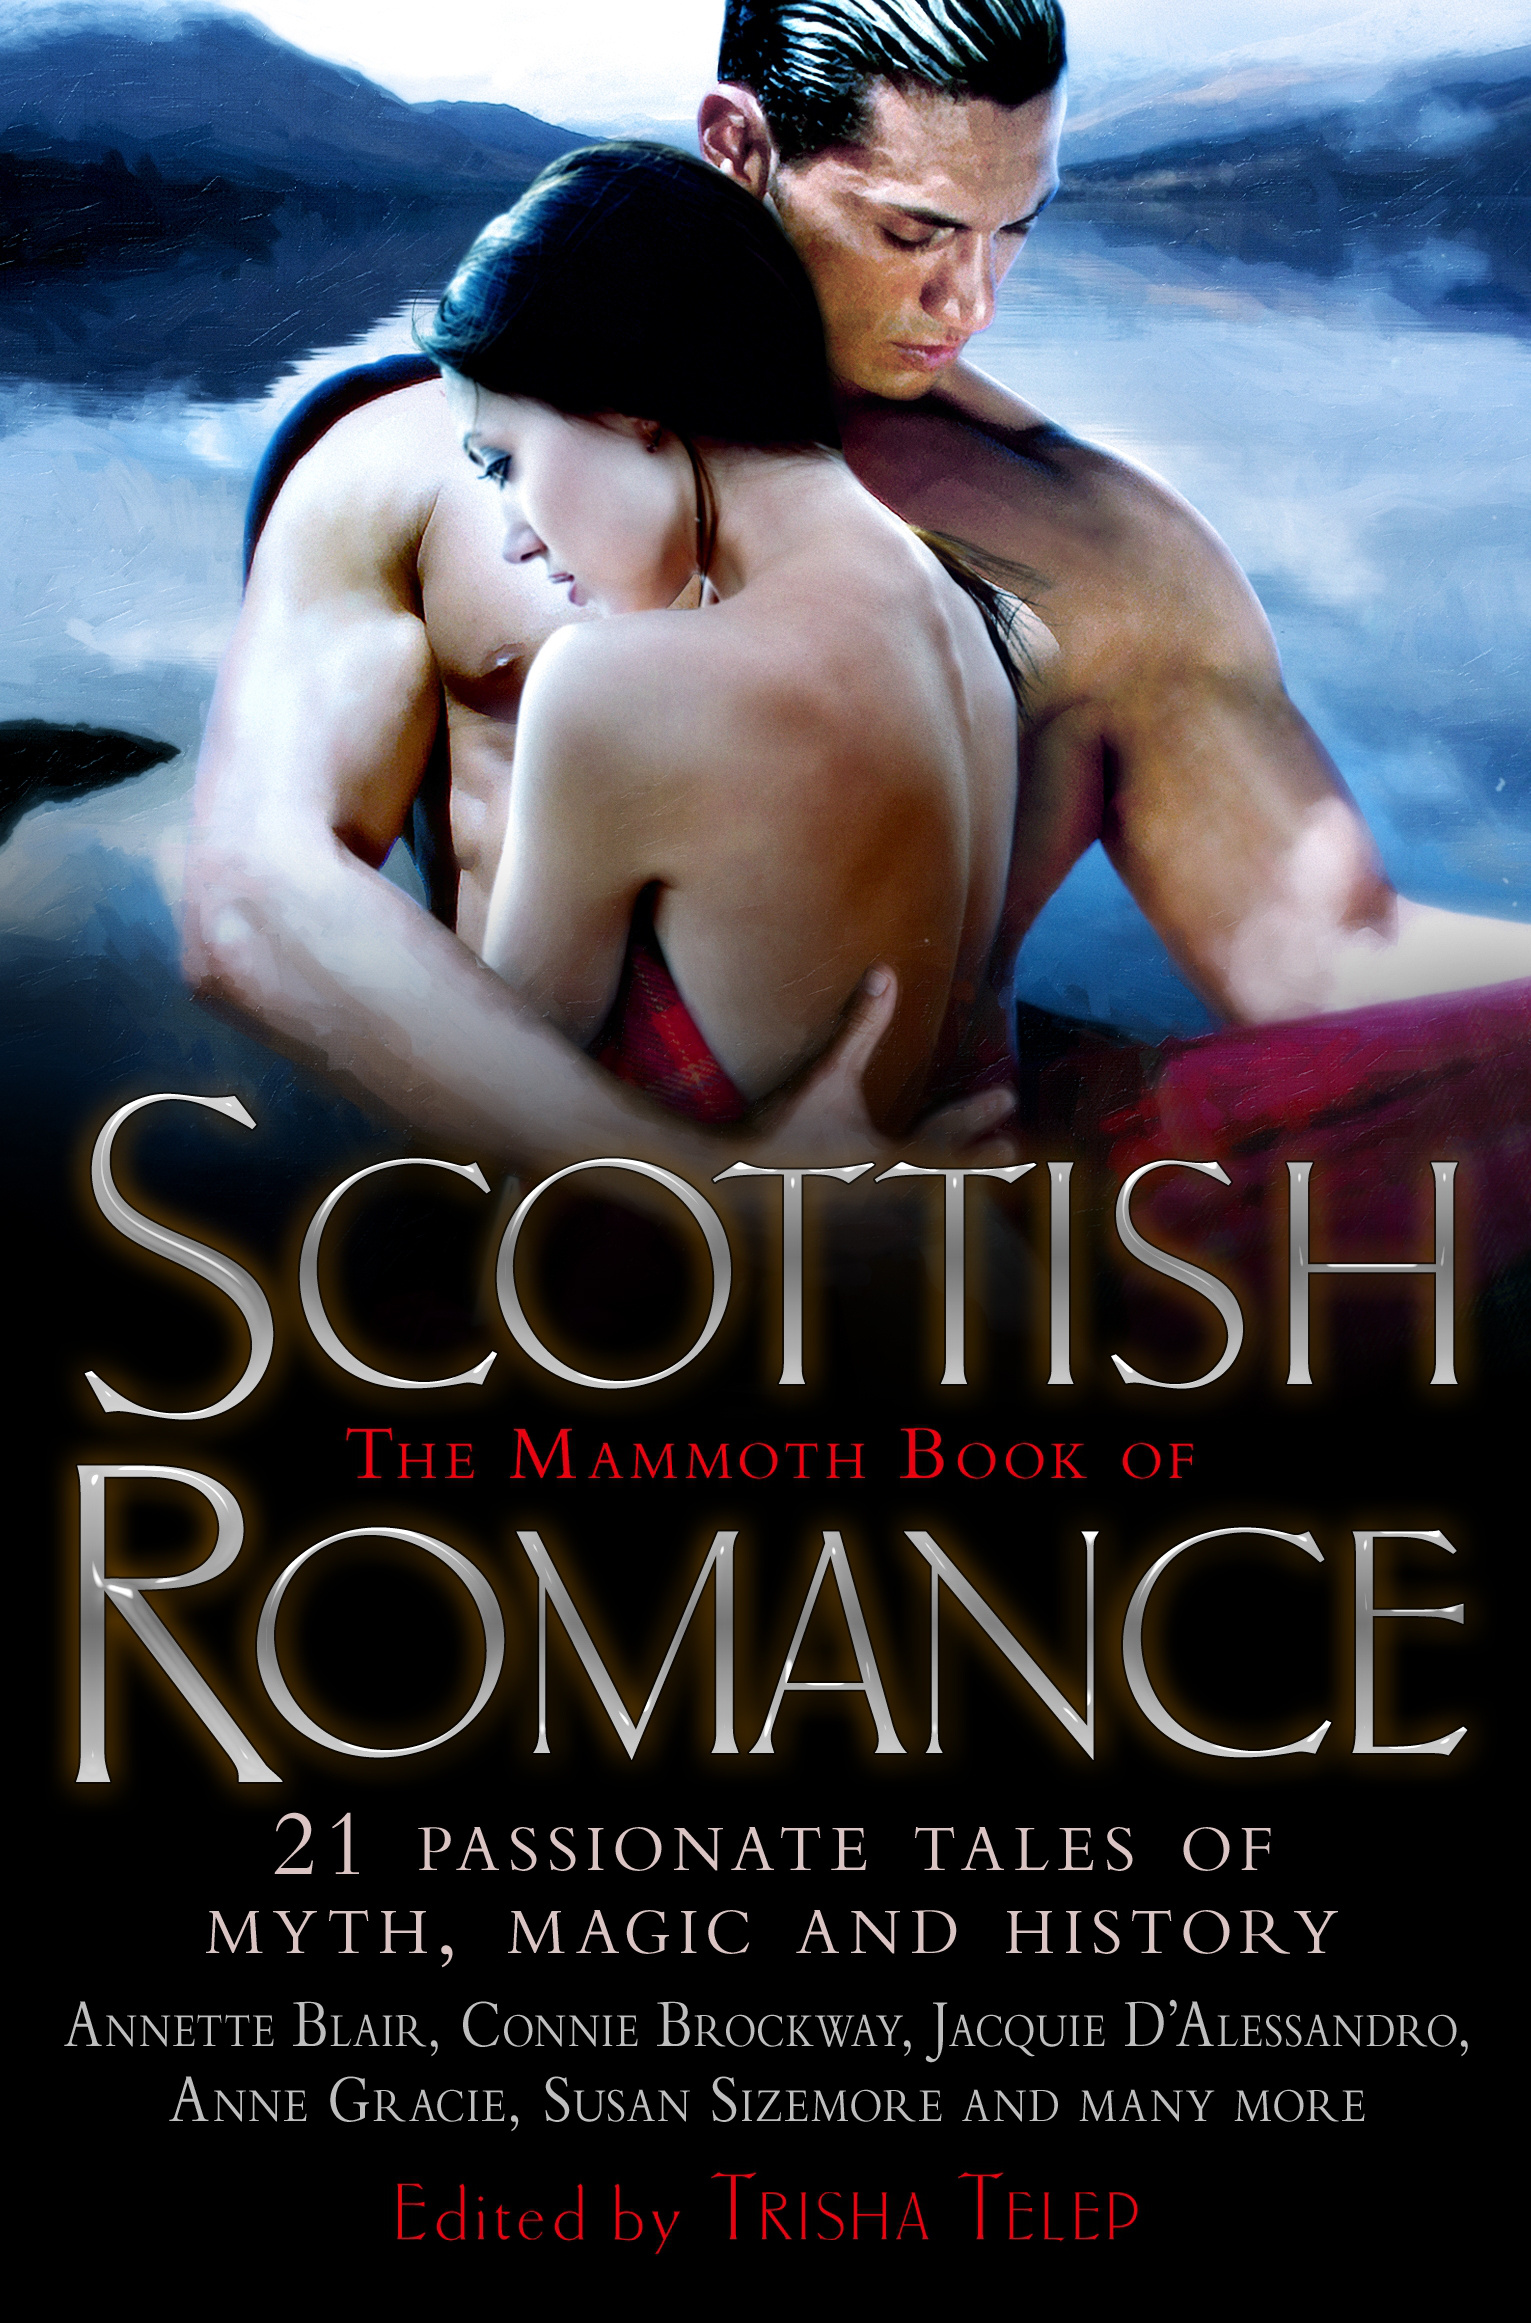 Image result for the mammoth book of scottish romance book cover